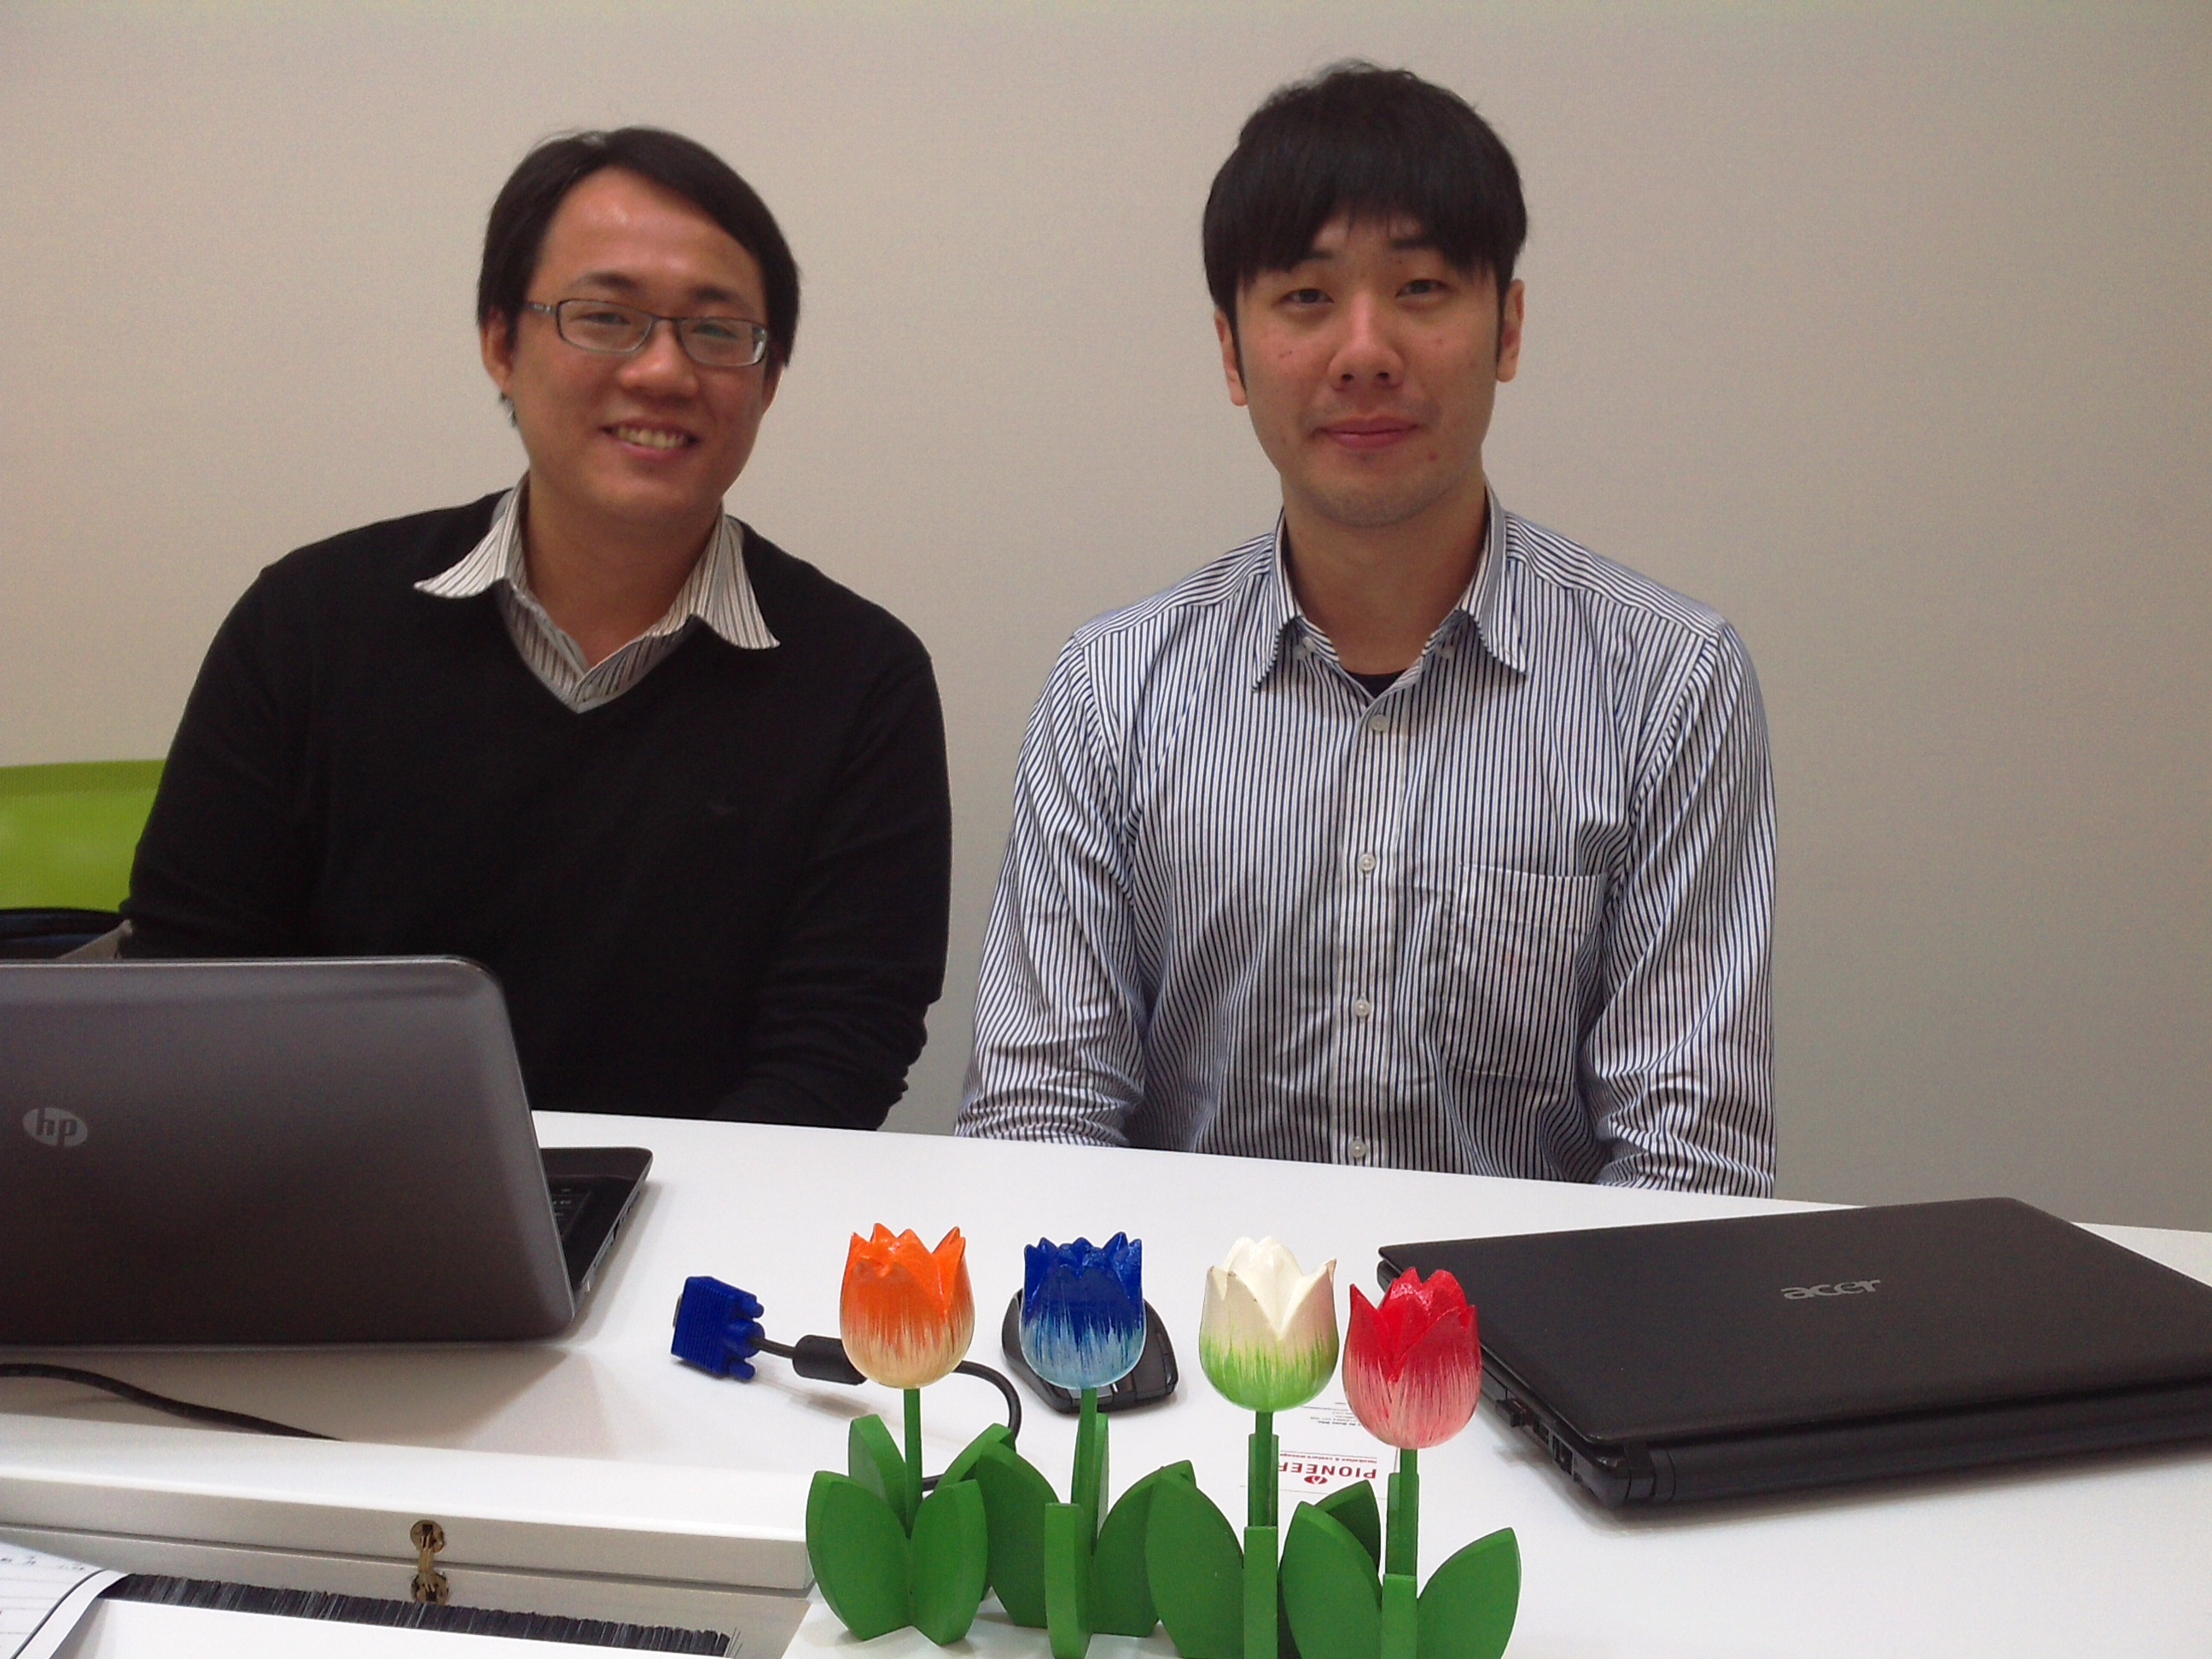 SEDA Chemical Products Taiwan: Developers of Smart Mattresses